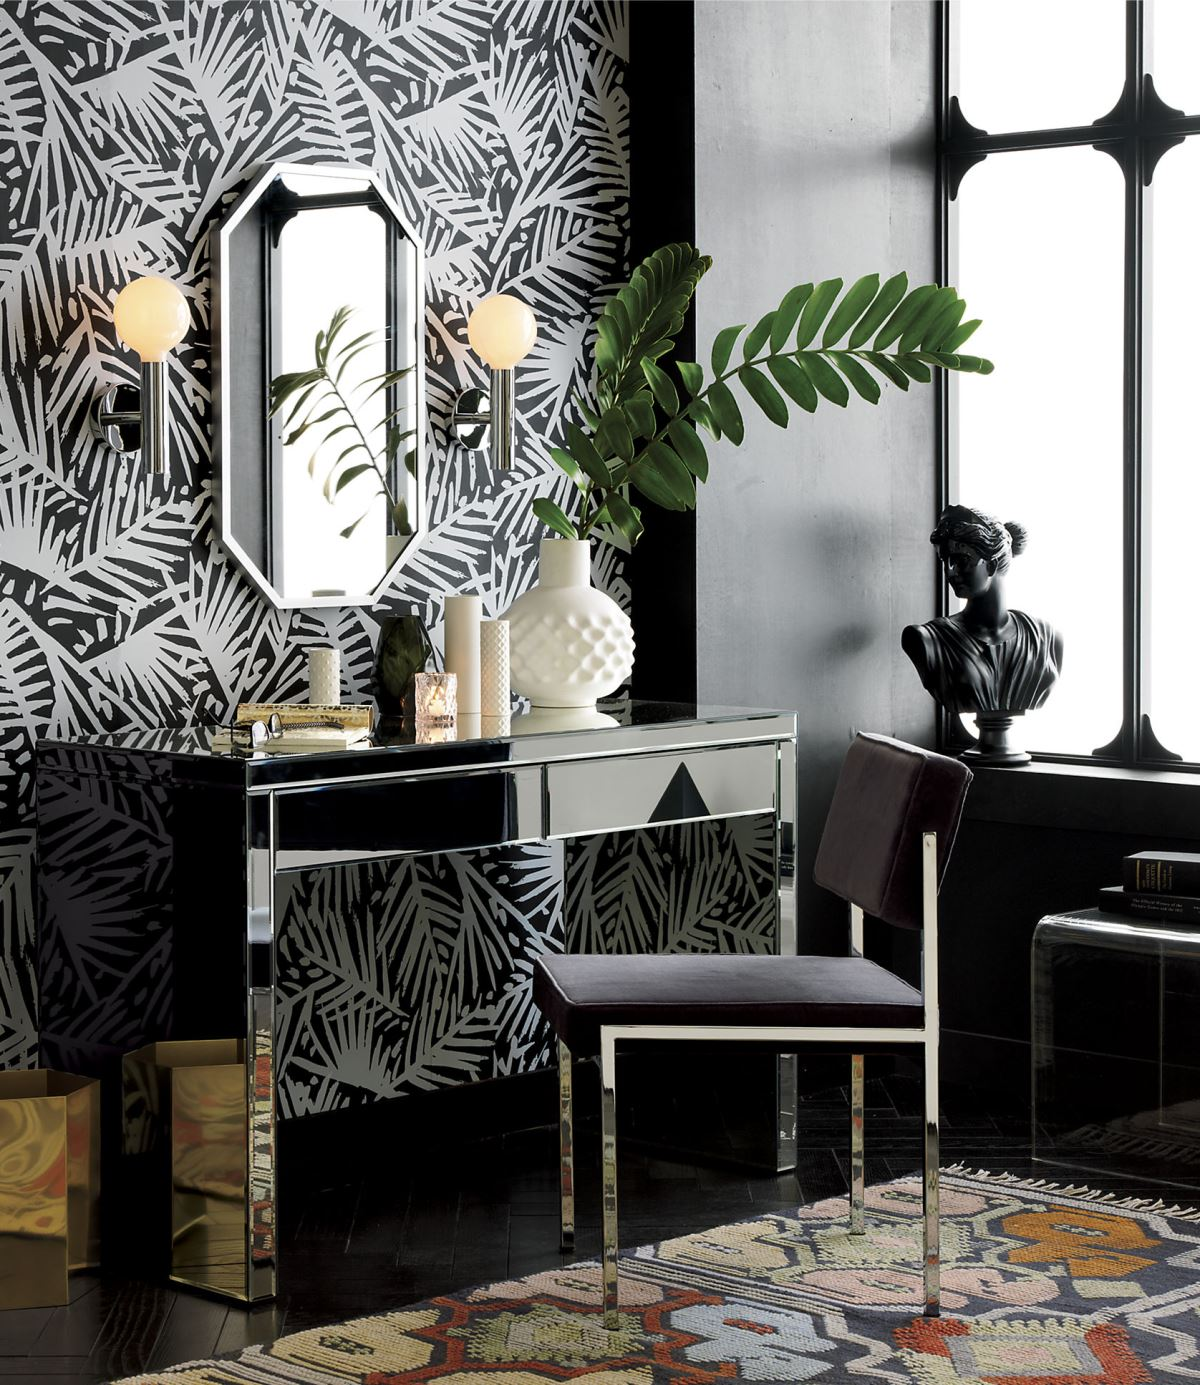 Mirrored desk from CB2